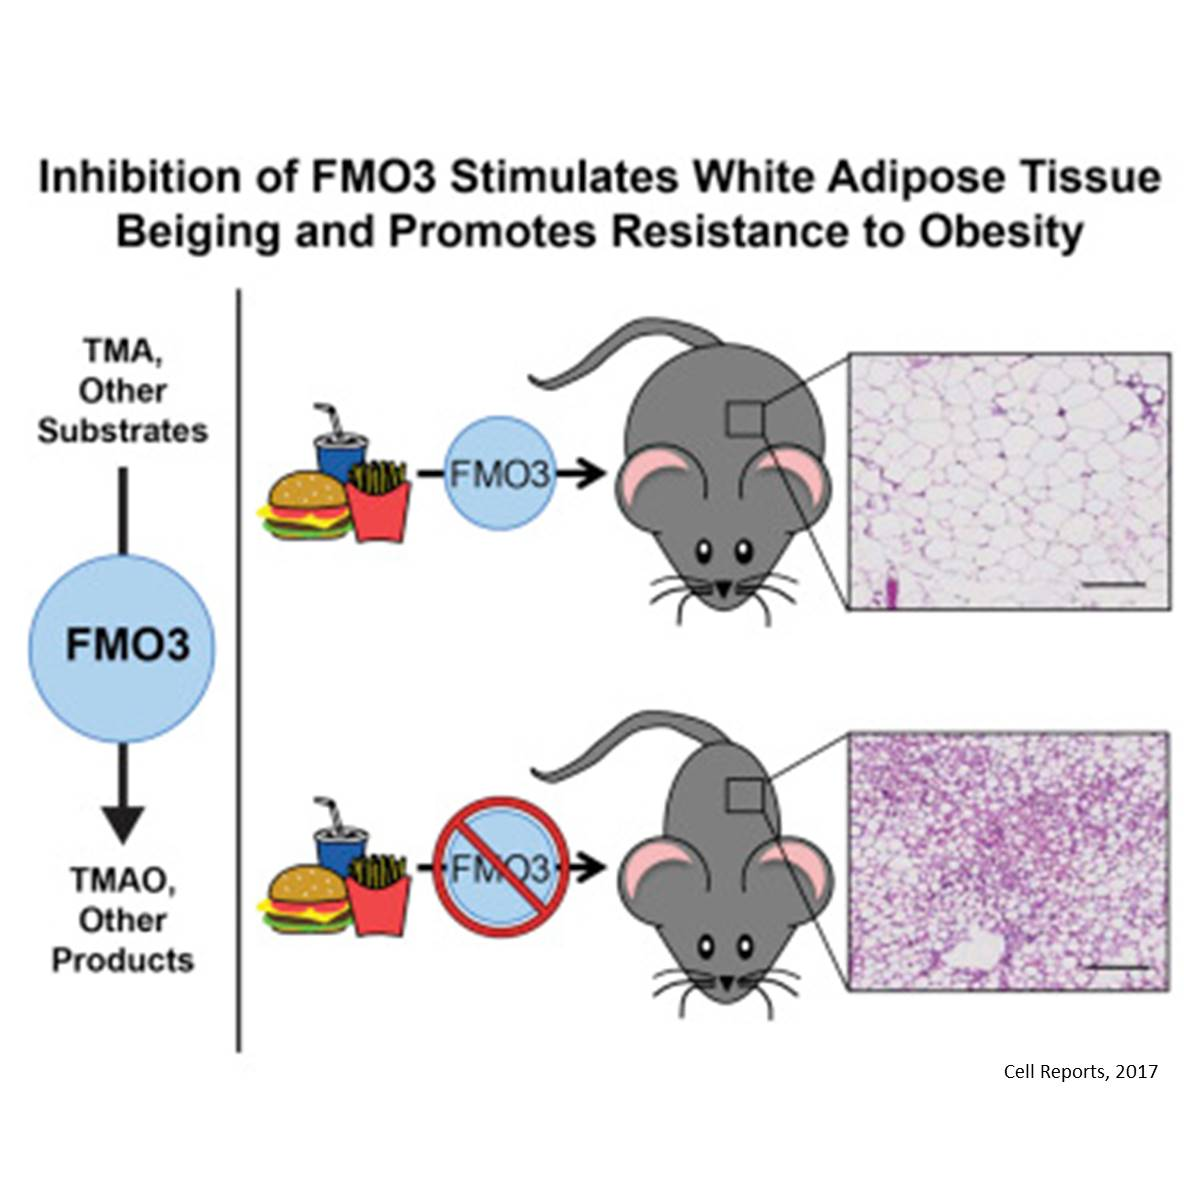 Altering gut bacteria pathways may stimulate fat tissue to prevent obesity